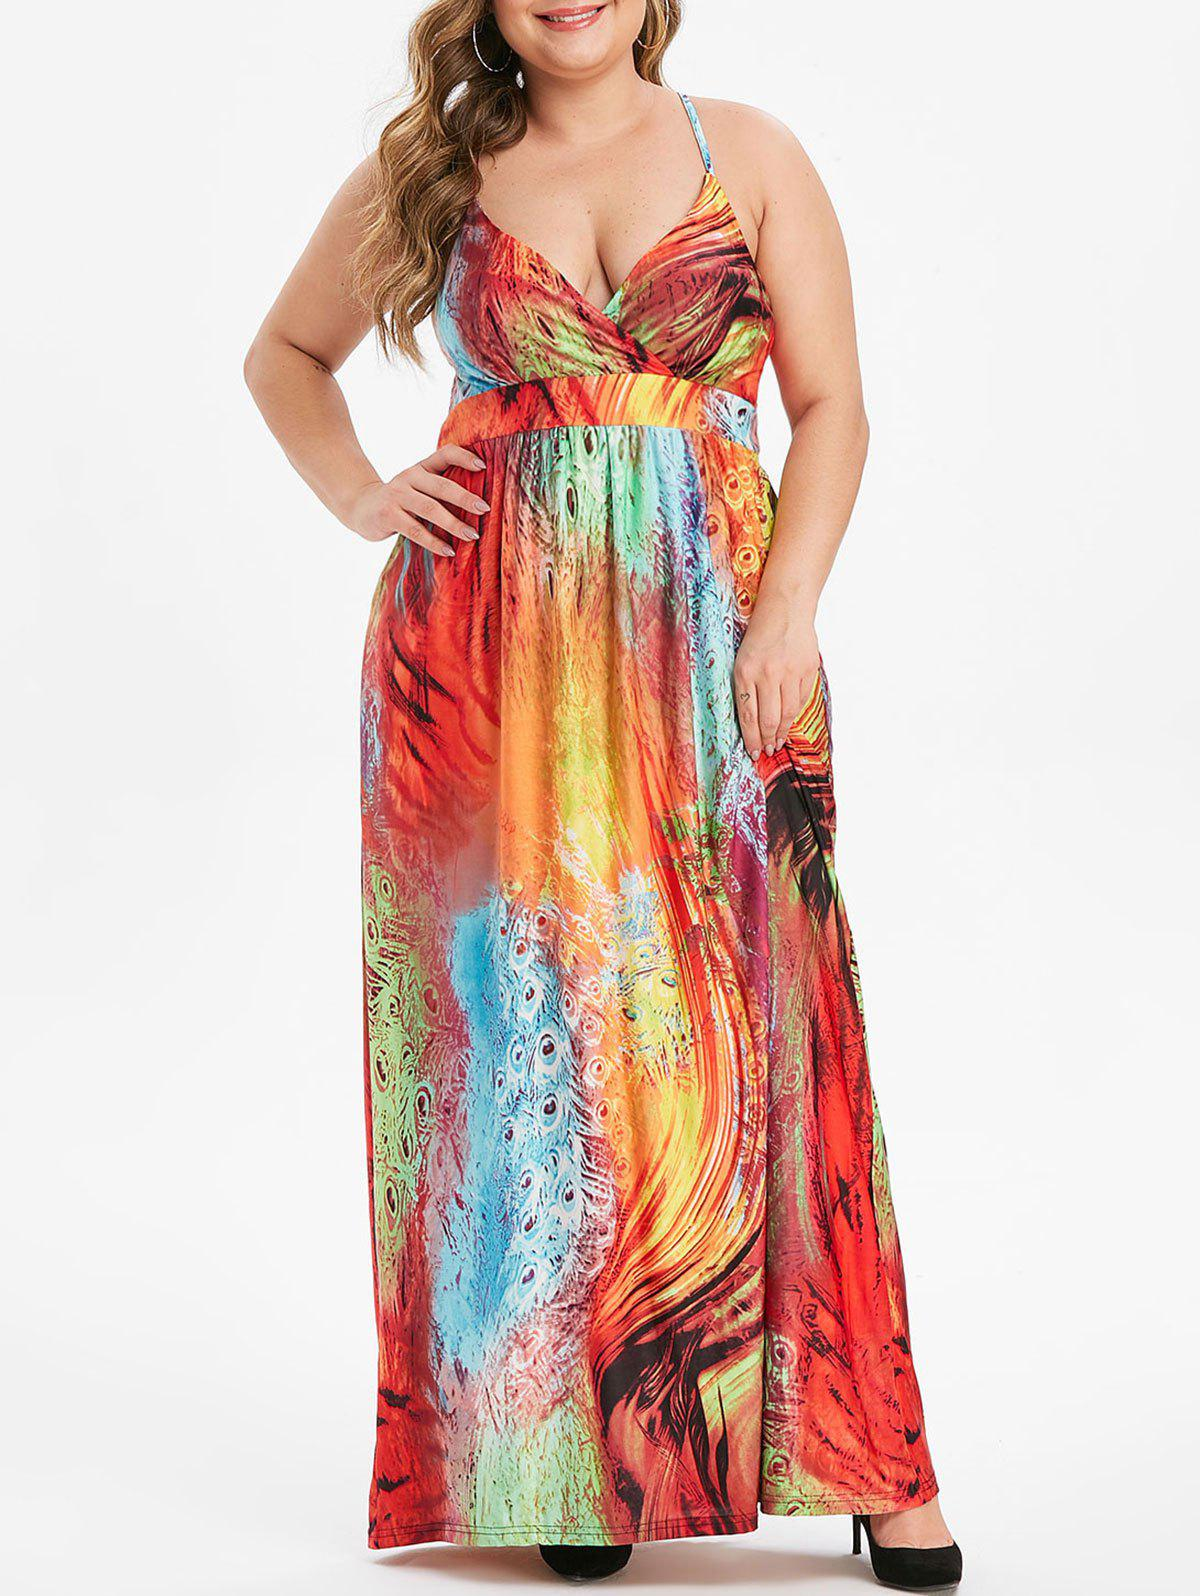 Feather Print Shirred Plus Size Cami Dress - multicolor 2X